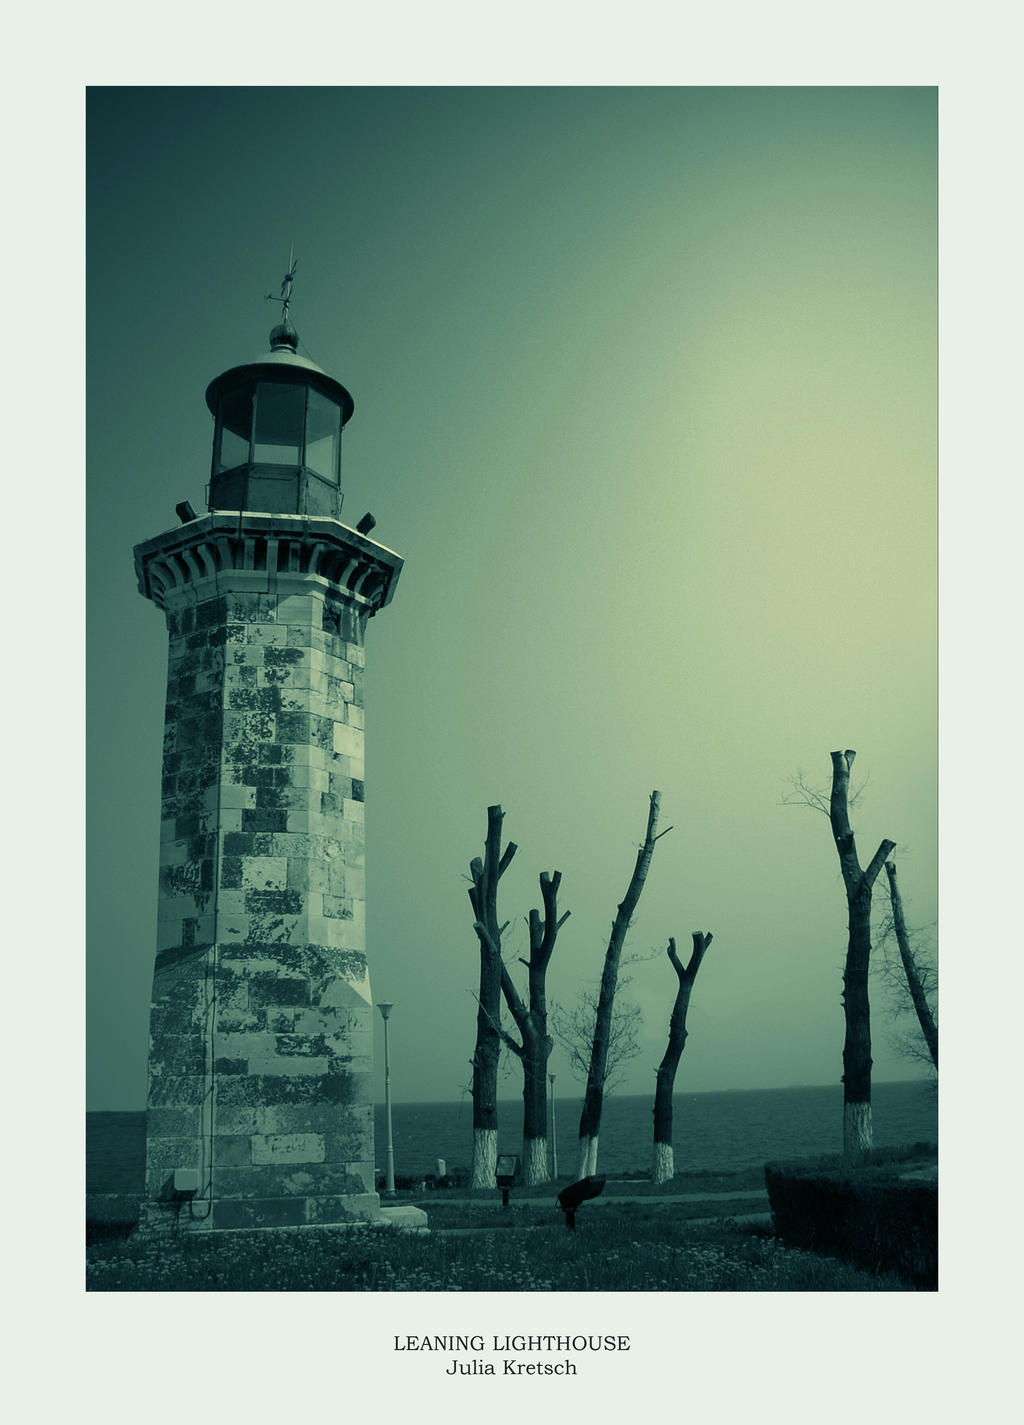 Leaning Lighthouse by JuliaKretsch